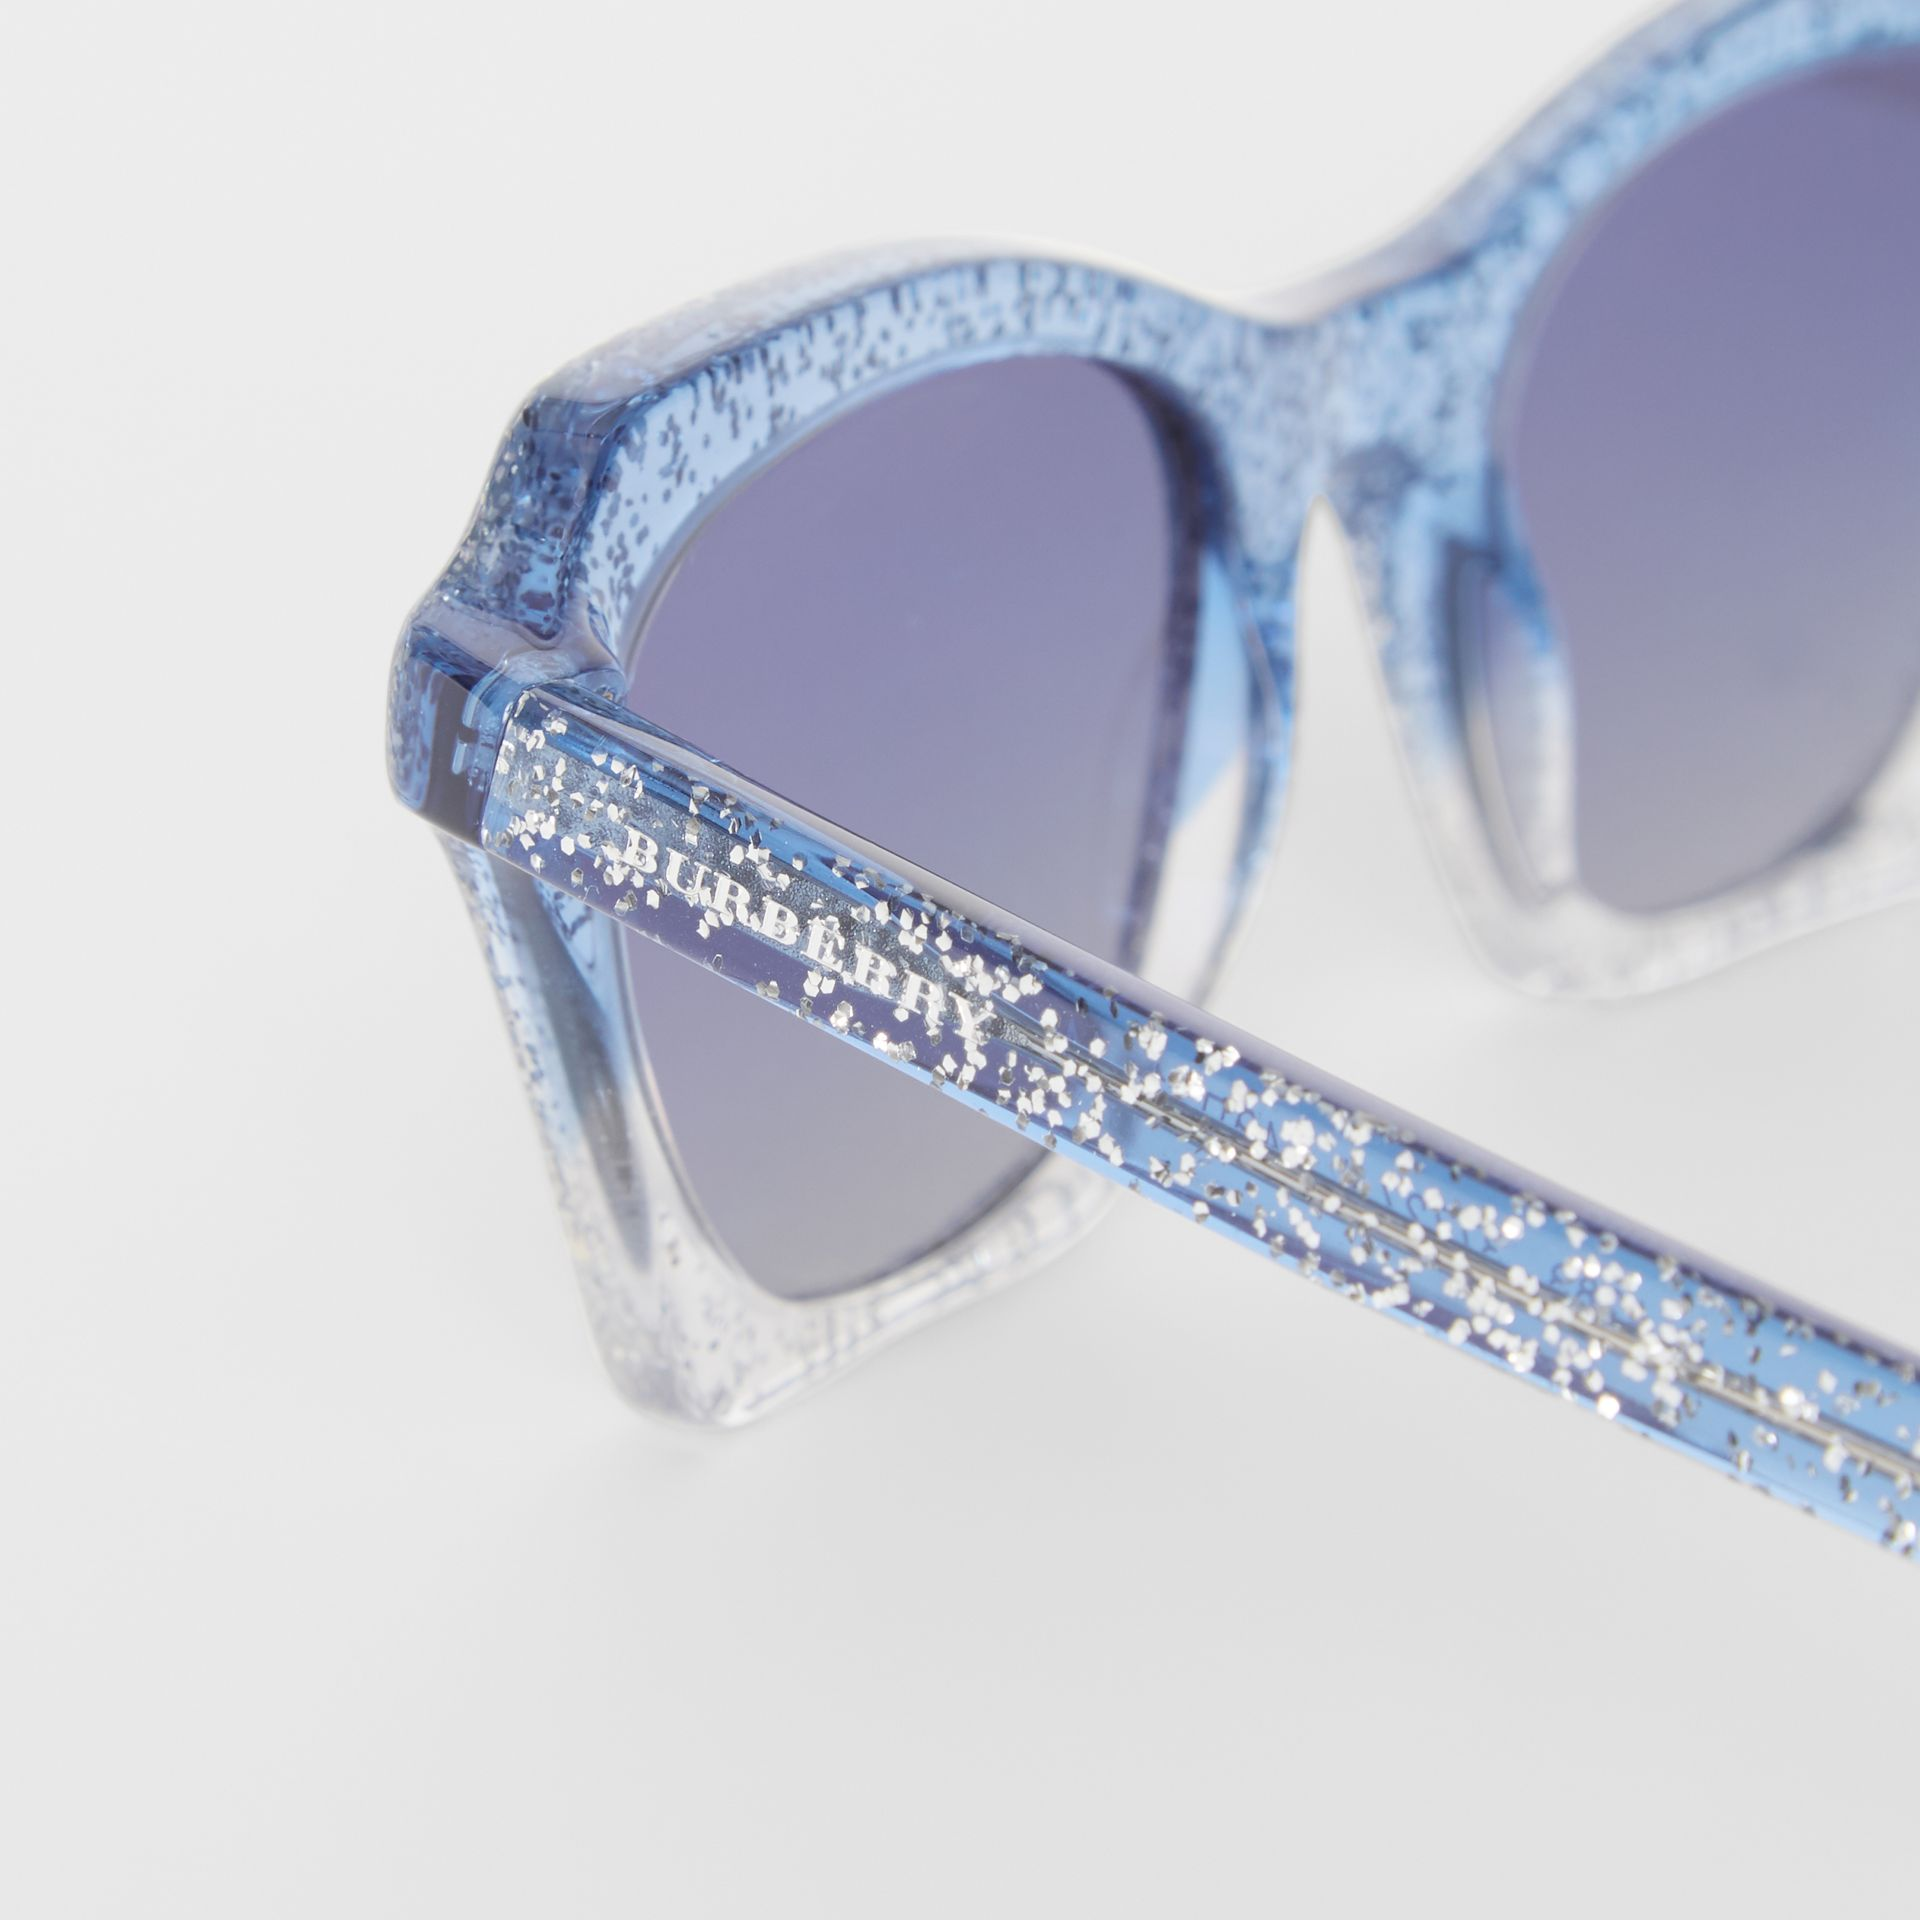 Butterfly Frame Sunglasses in Blue - Women | Burberry Hong Kong - gallery image 1